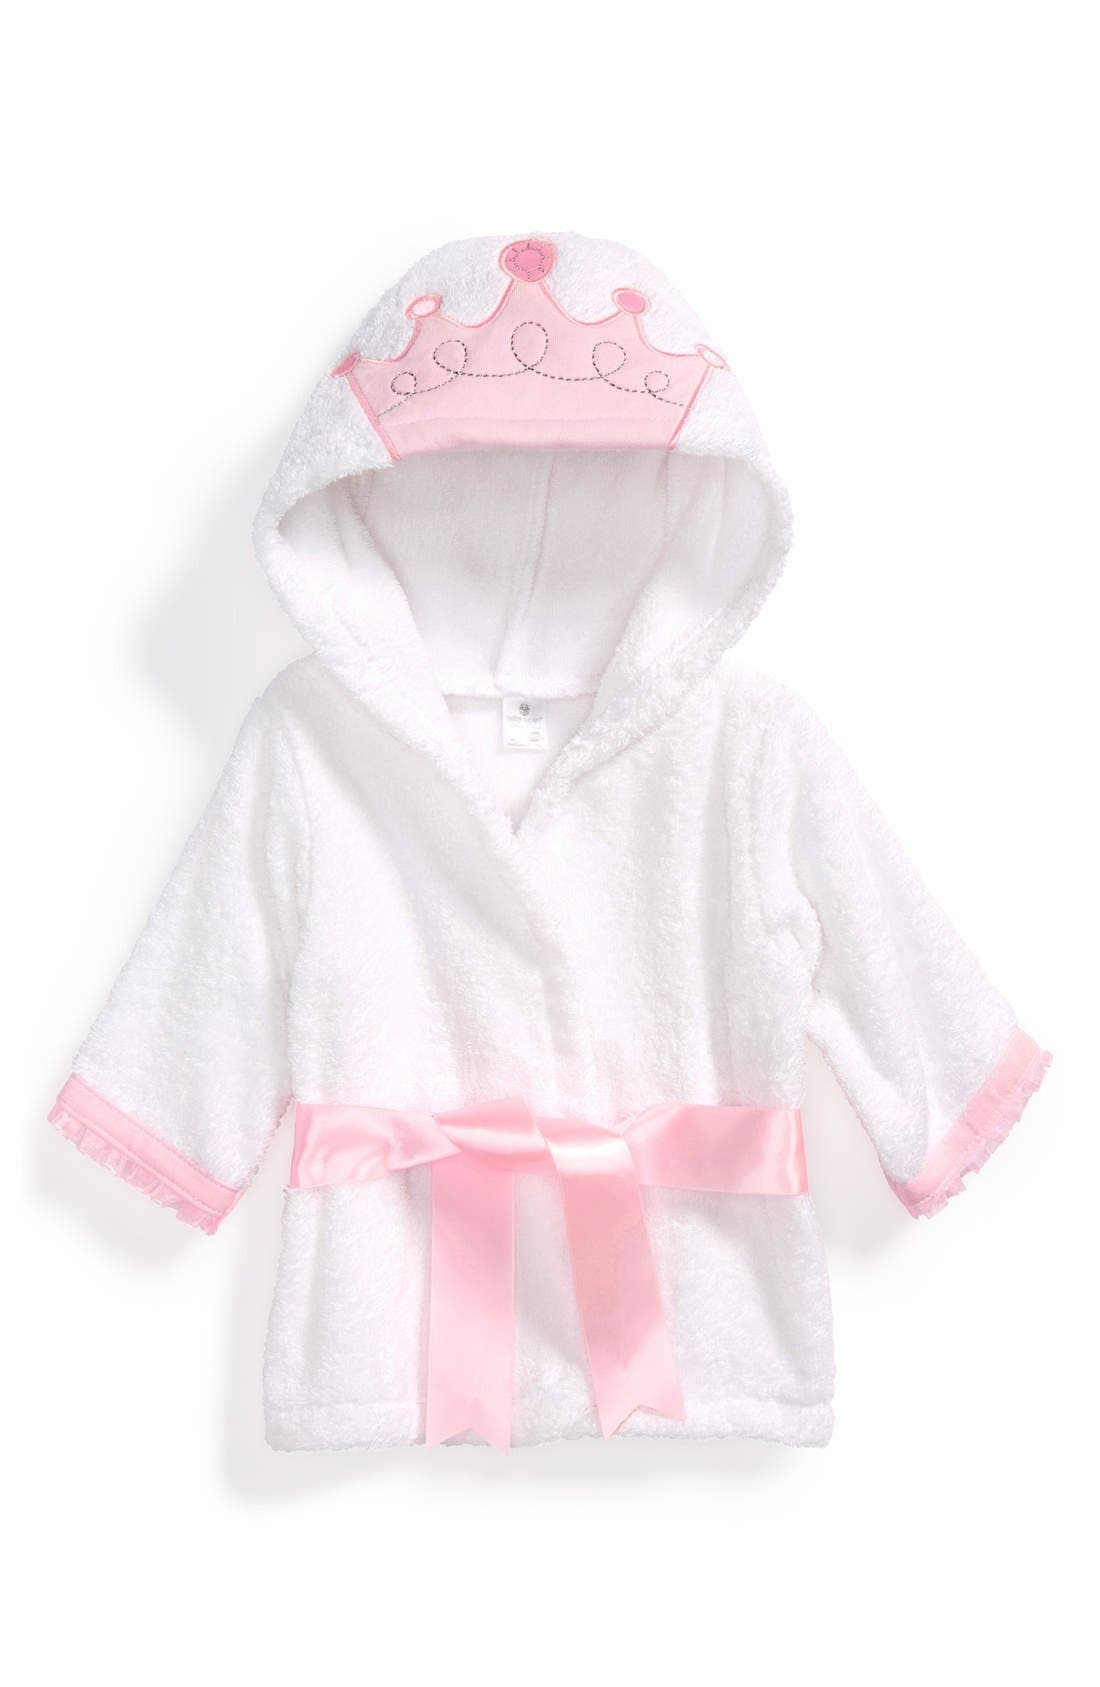 Baby Aspen Little Princess Hooded Terry Robe (Baby)